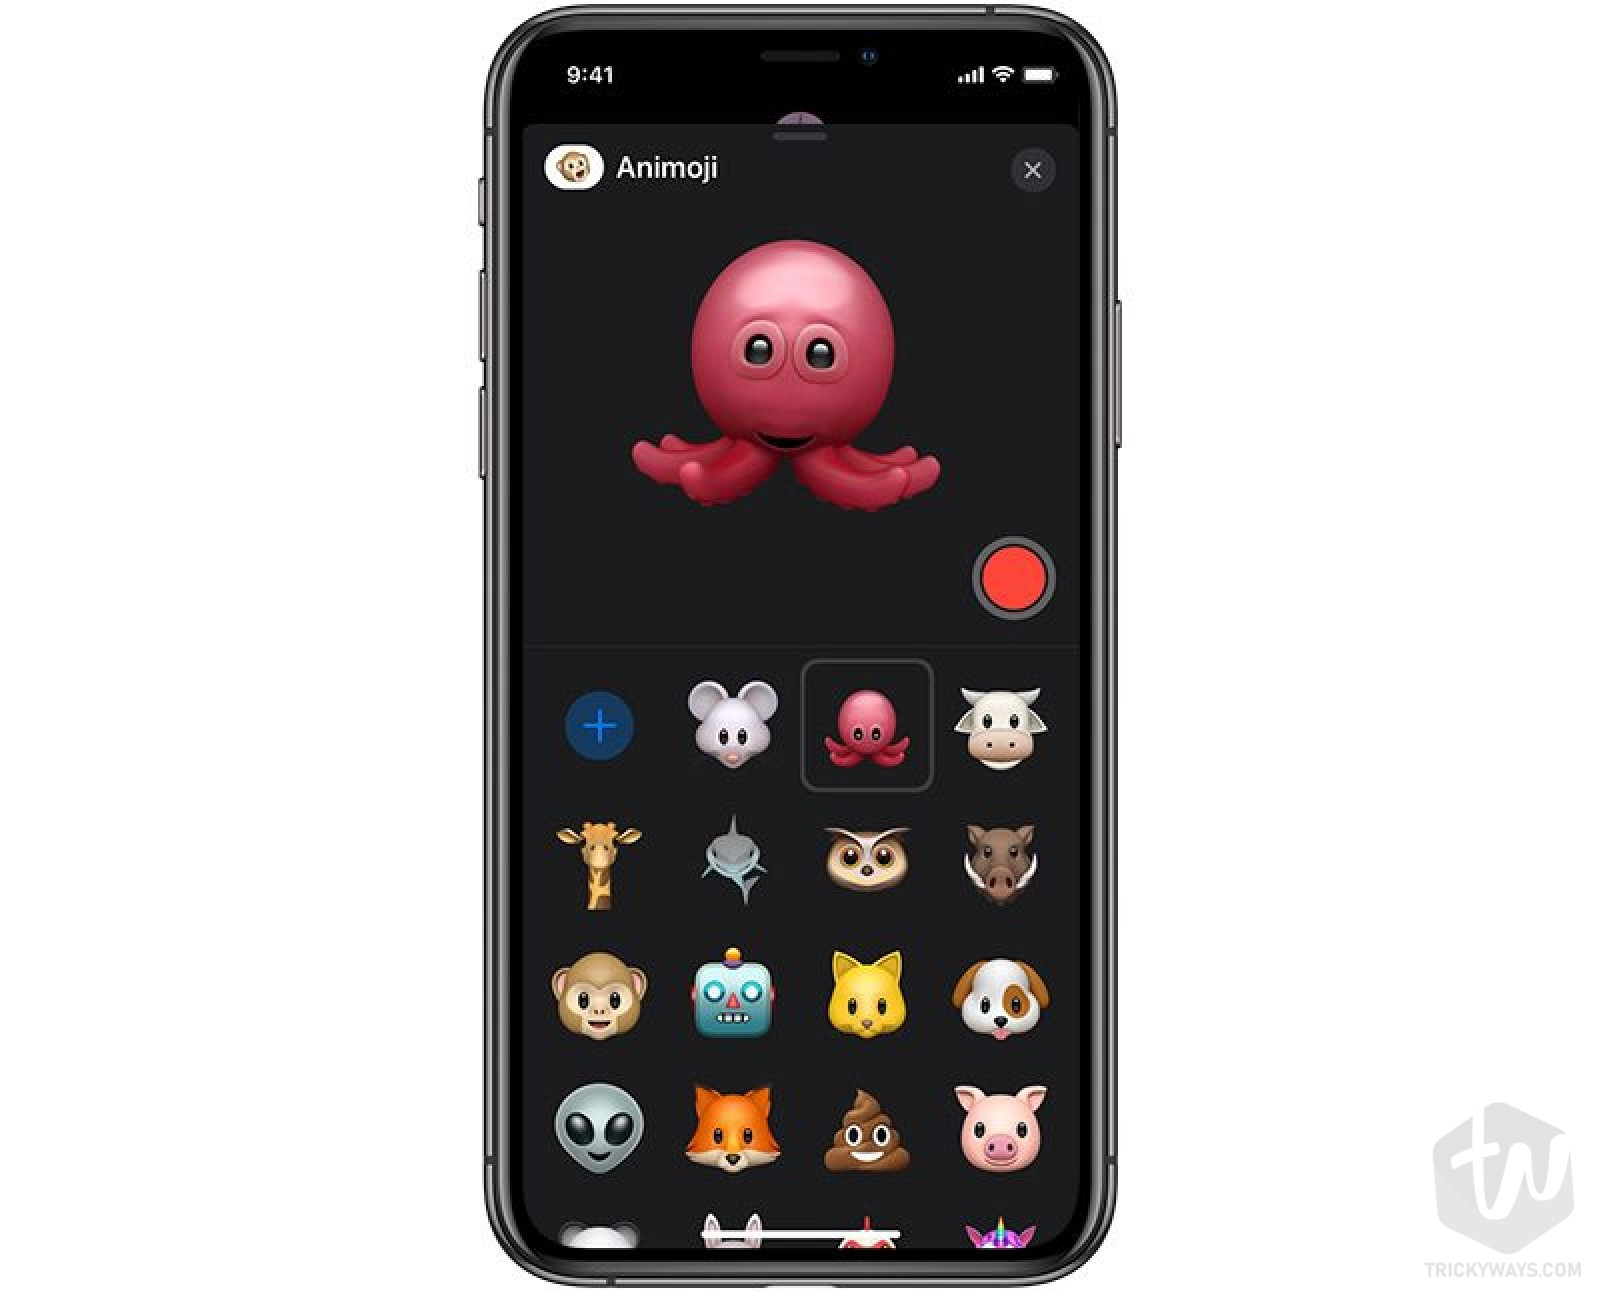 new Animoji's in iOS 13 Mouse, Octopus and more